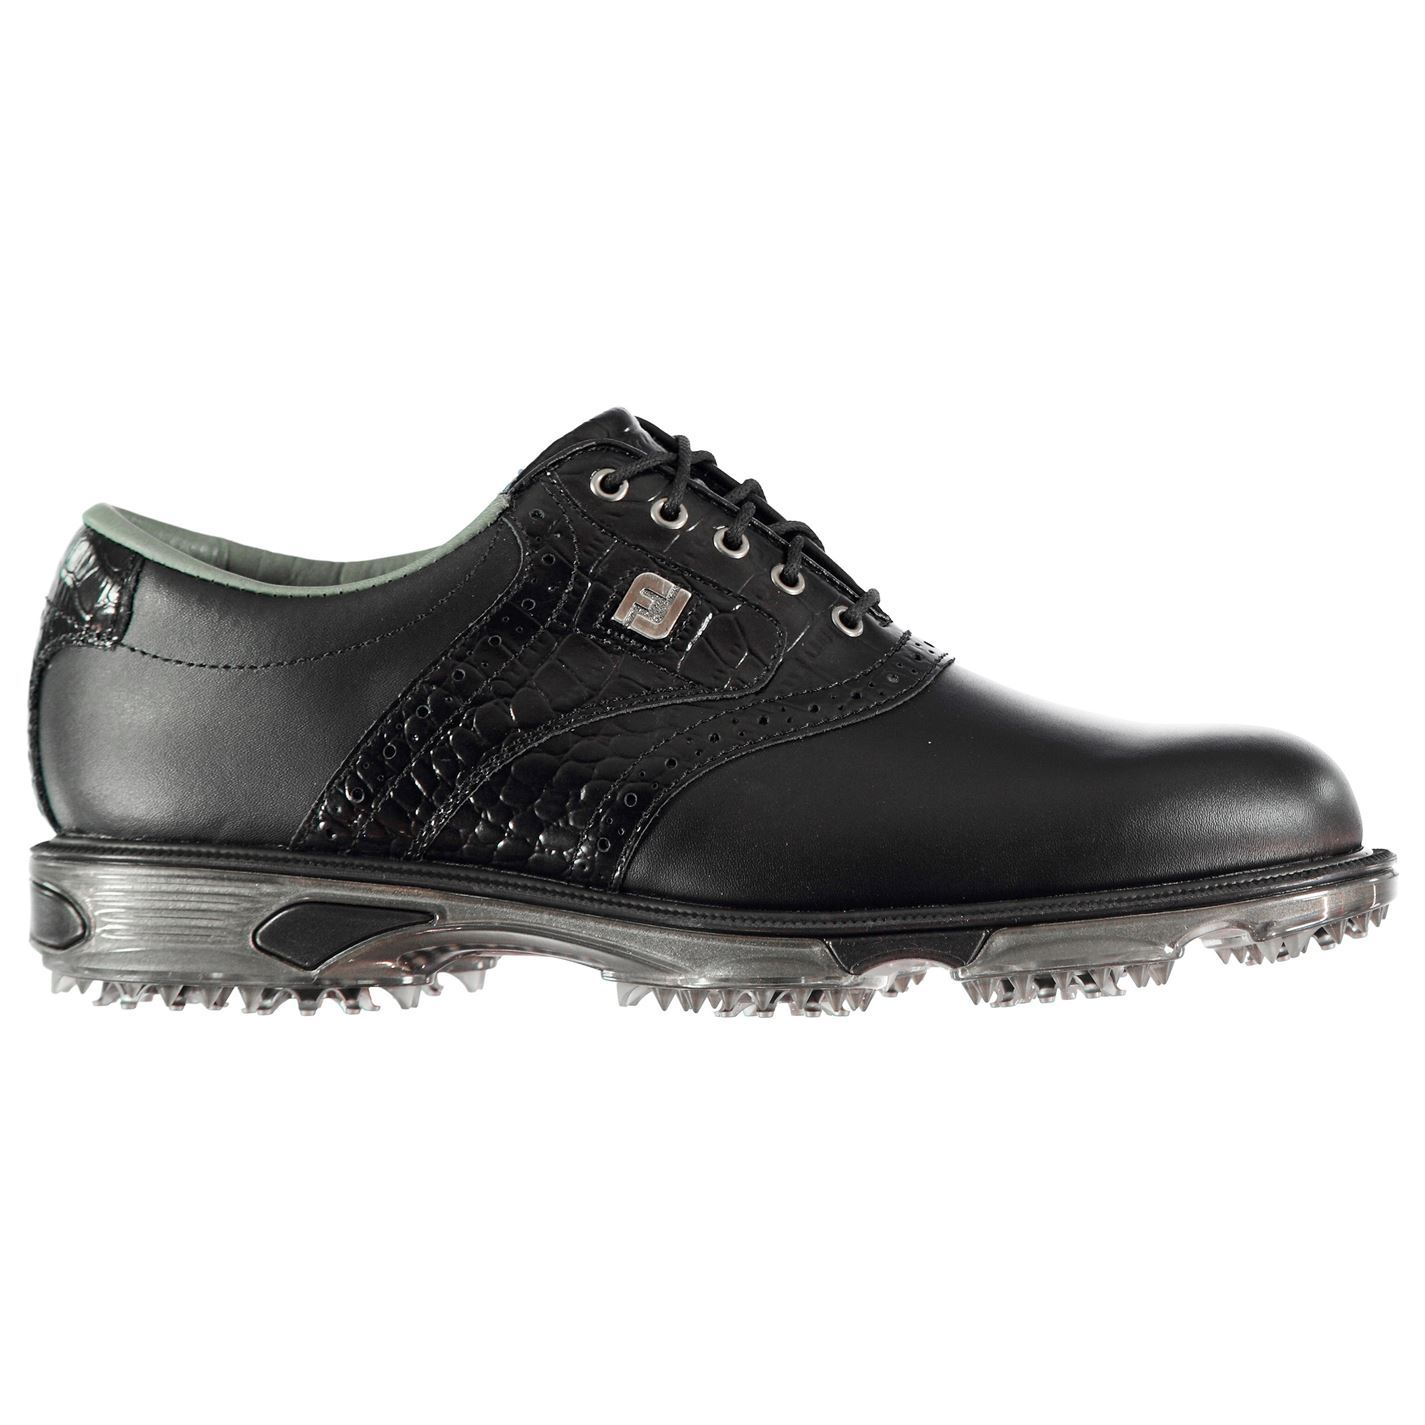 Footjoy-DryJoys-Tour-Golf-Shoes-Mens-Spikes-Footwear thumbnail 7